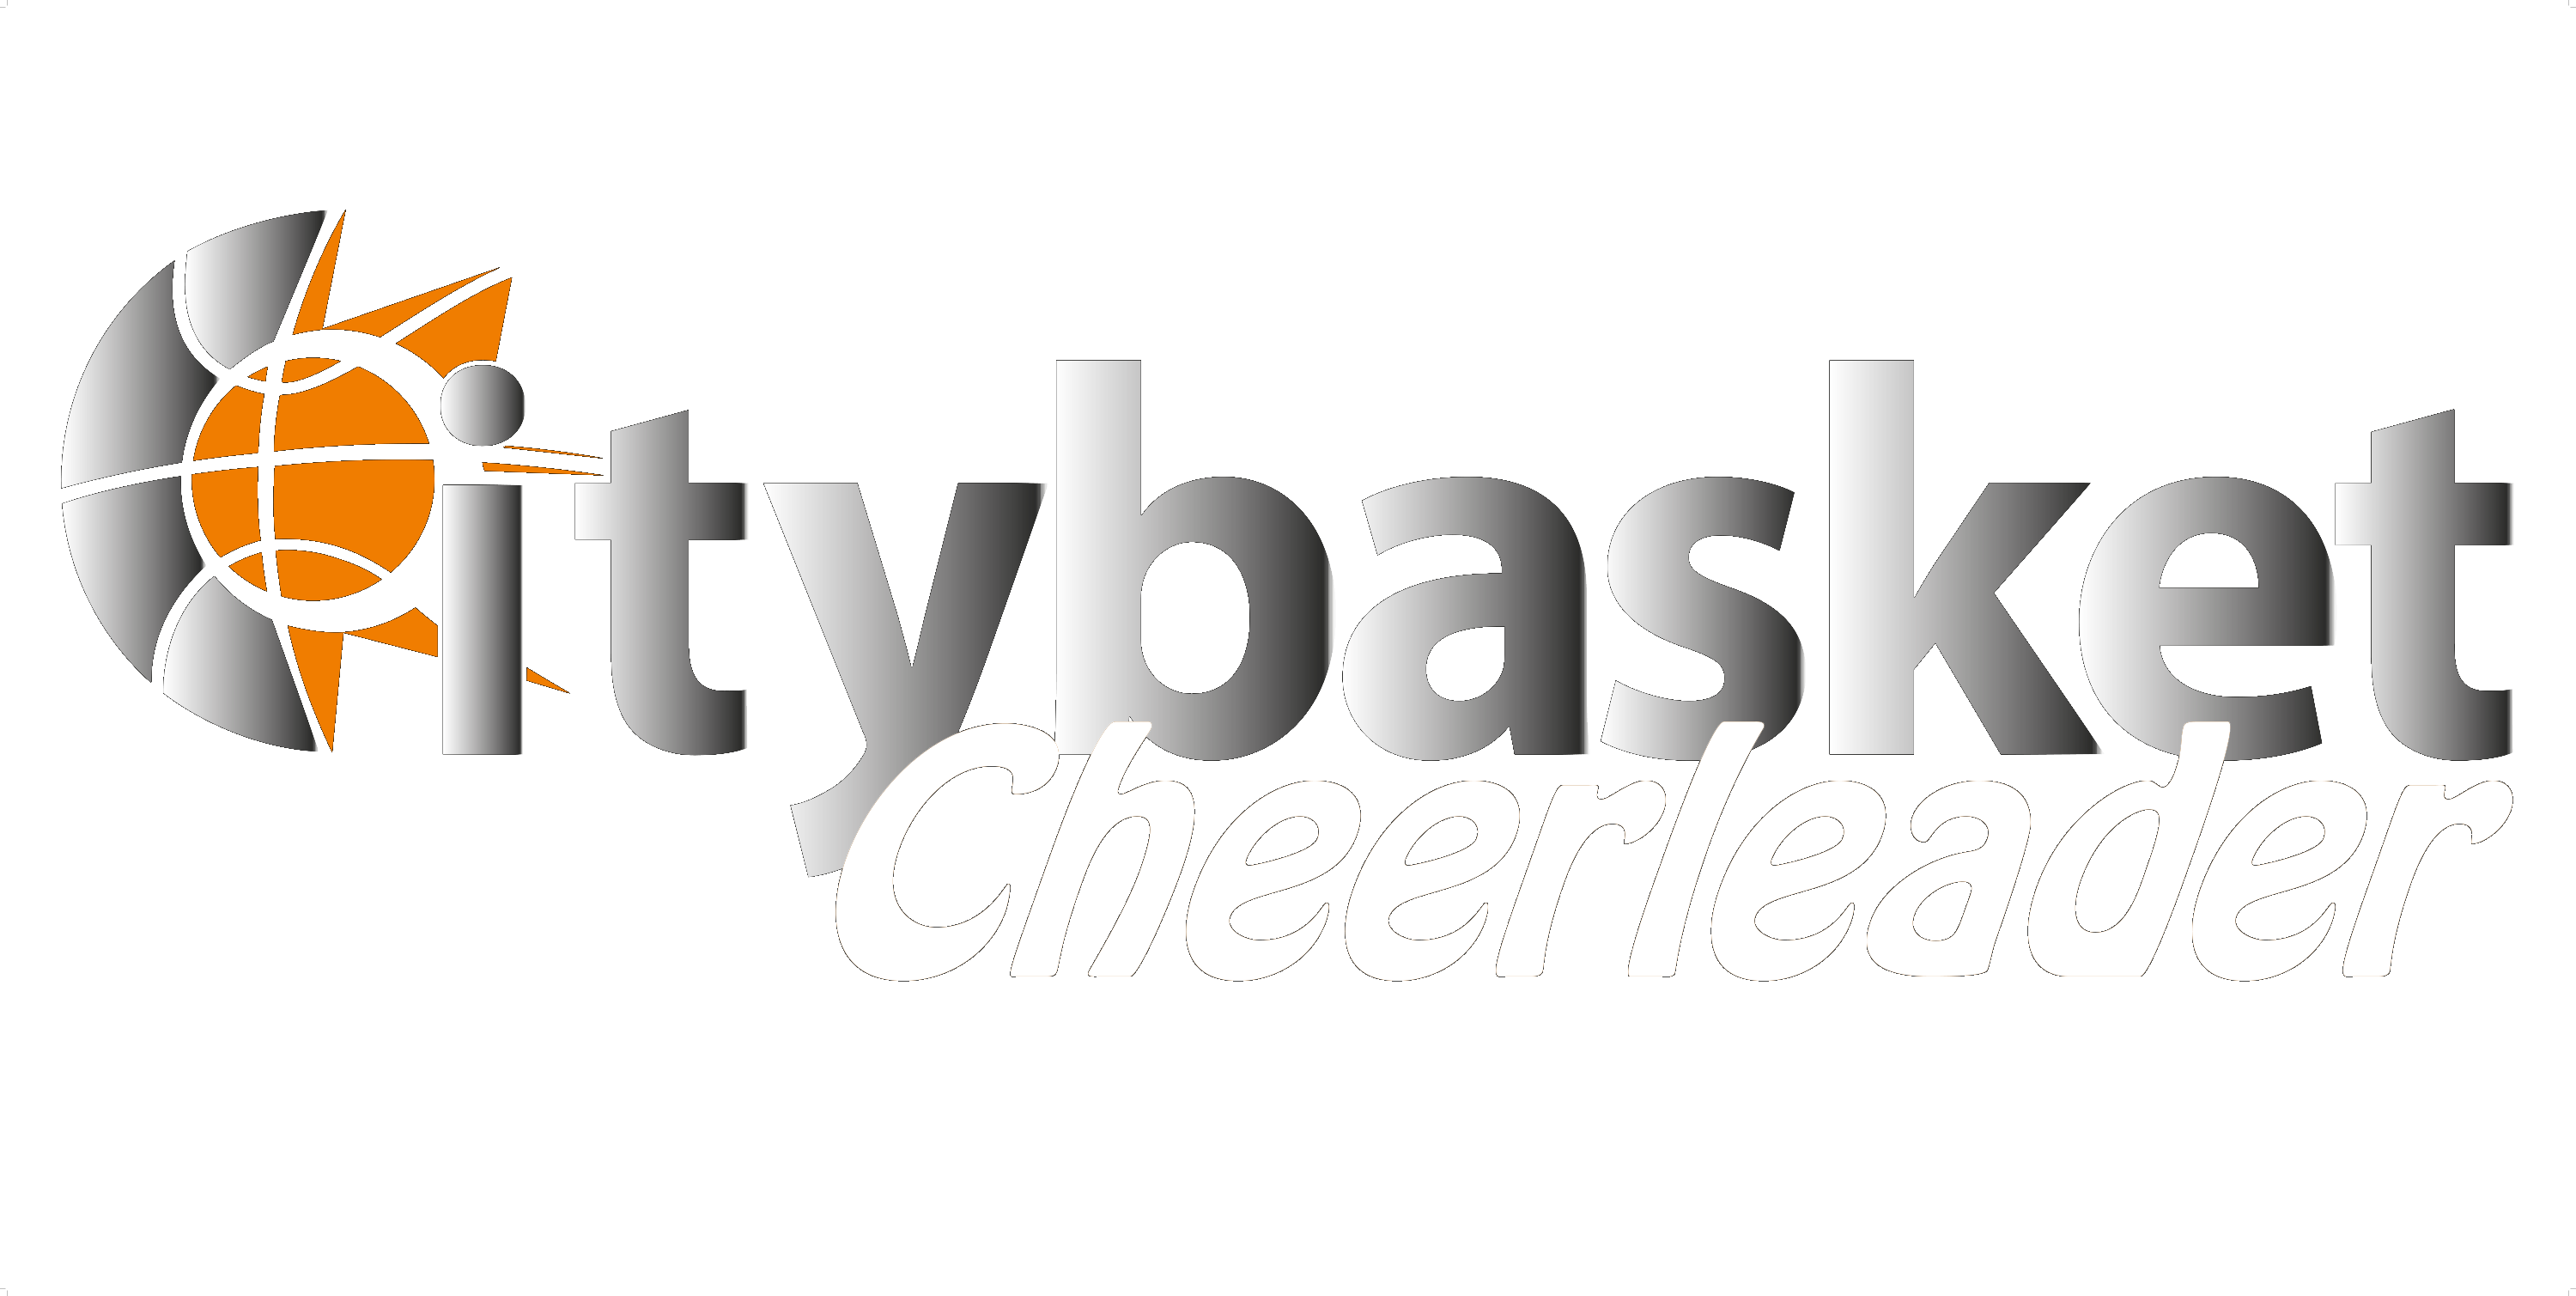 Citybasket Cheerleader